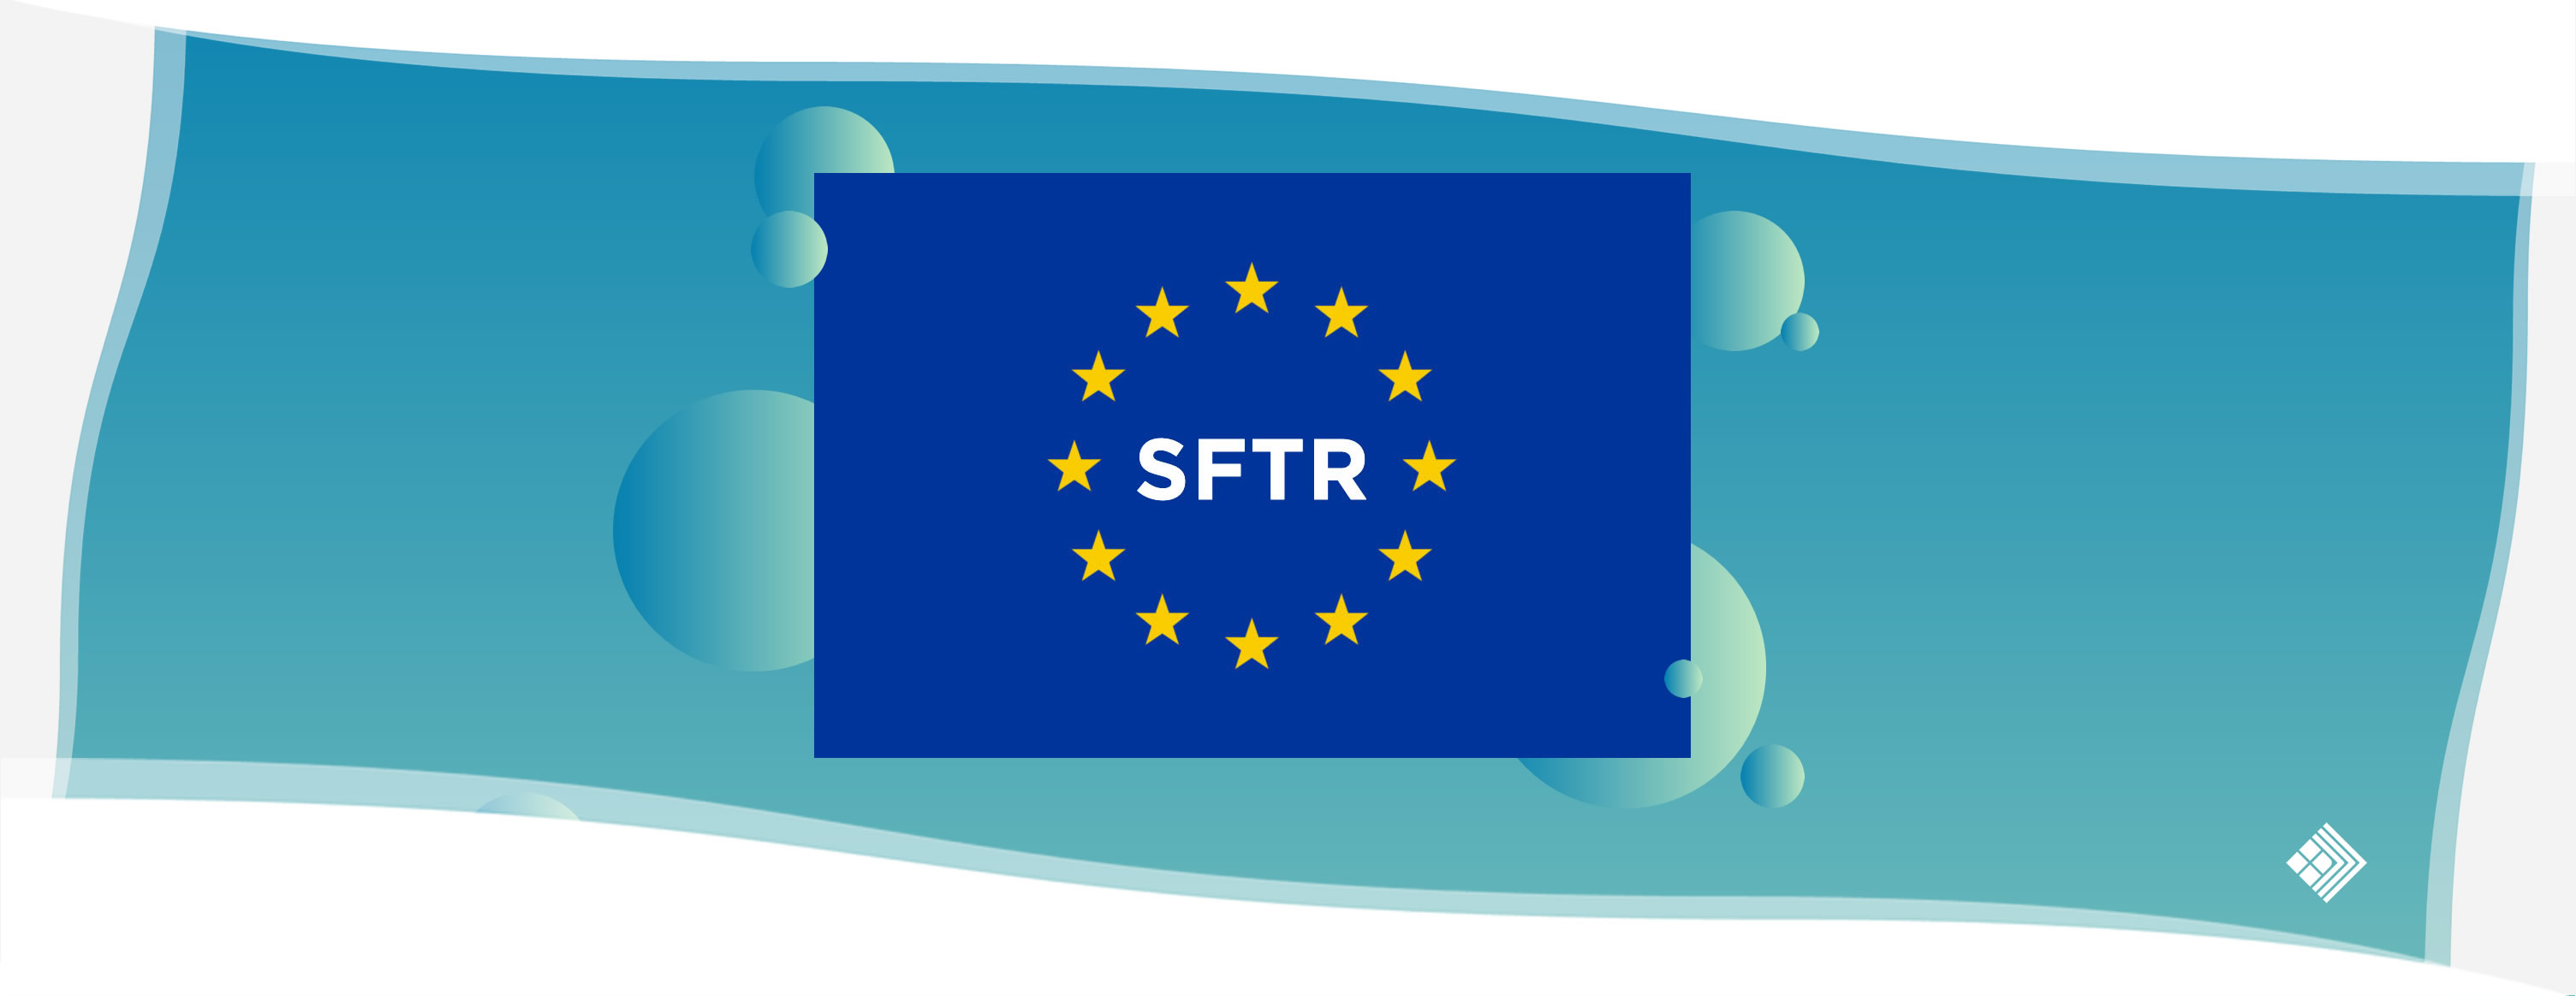 SFTR - Reports for CADIT securities financing transactions